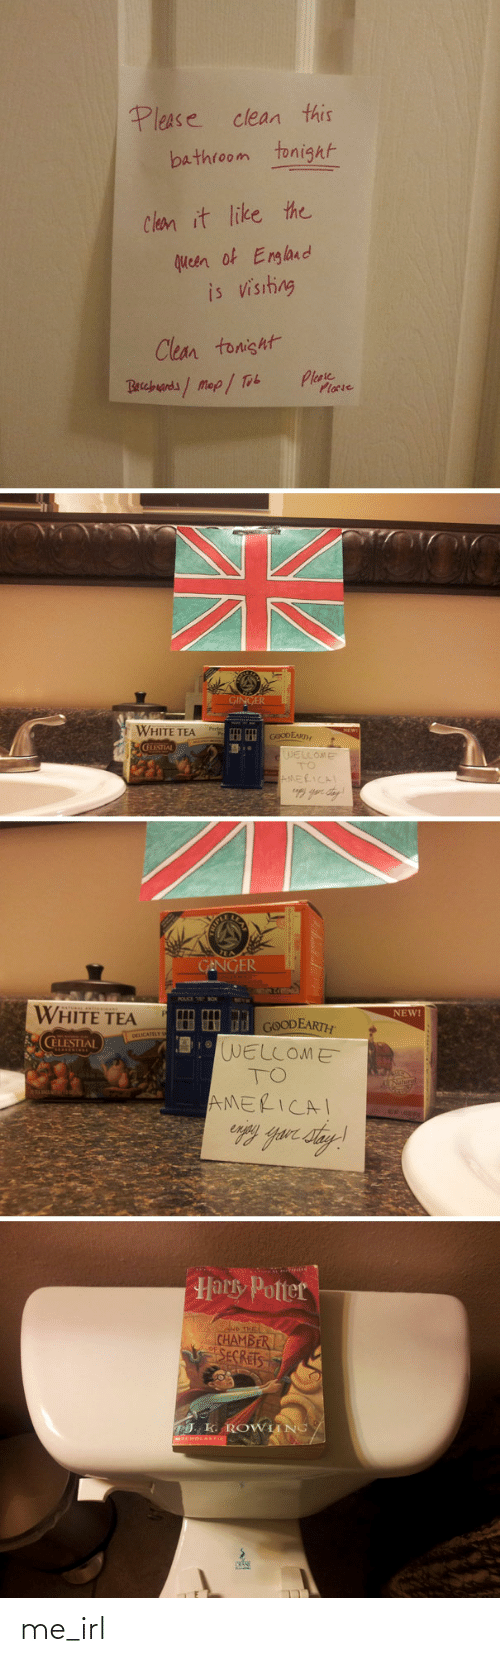 celestial: Please  clean this  tonight  bathroom  clean it like the  queen of England  is visiting  Clean tonisht  Pleaie  Placie  Beccbuands/ Mop/ Tob  GINGER  WHITE TEA  COODEARTH  GLESTIAL  WELLOME  TO  AMERICAL  CANGER  WHITE TEA  NEW!  GOODEARTH  WELCOME  TO  DICATELY S  CELESTIAL  AMERICAI  Harry Potter  CHAMBER  SECRETS  J. k. ROWIING/  SCHOLANTIC me_irl